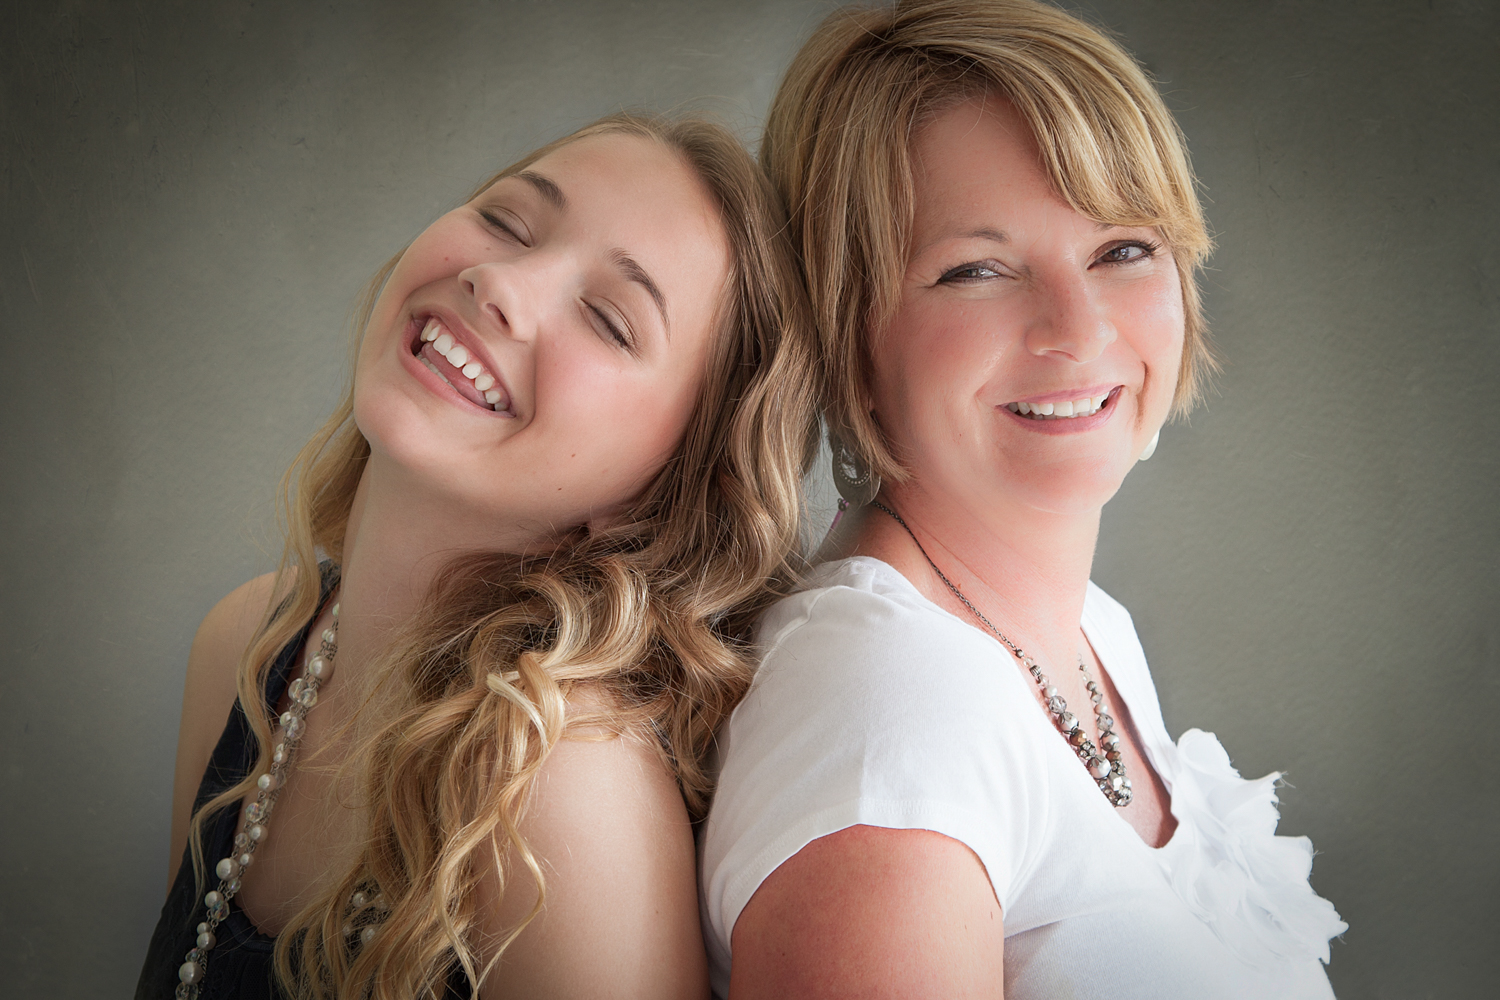 Portrait-Mothers-and-Daughters--having-fun-together-back-to-back-077.jpg